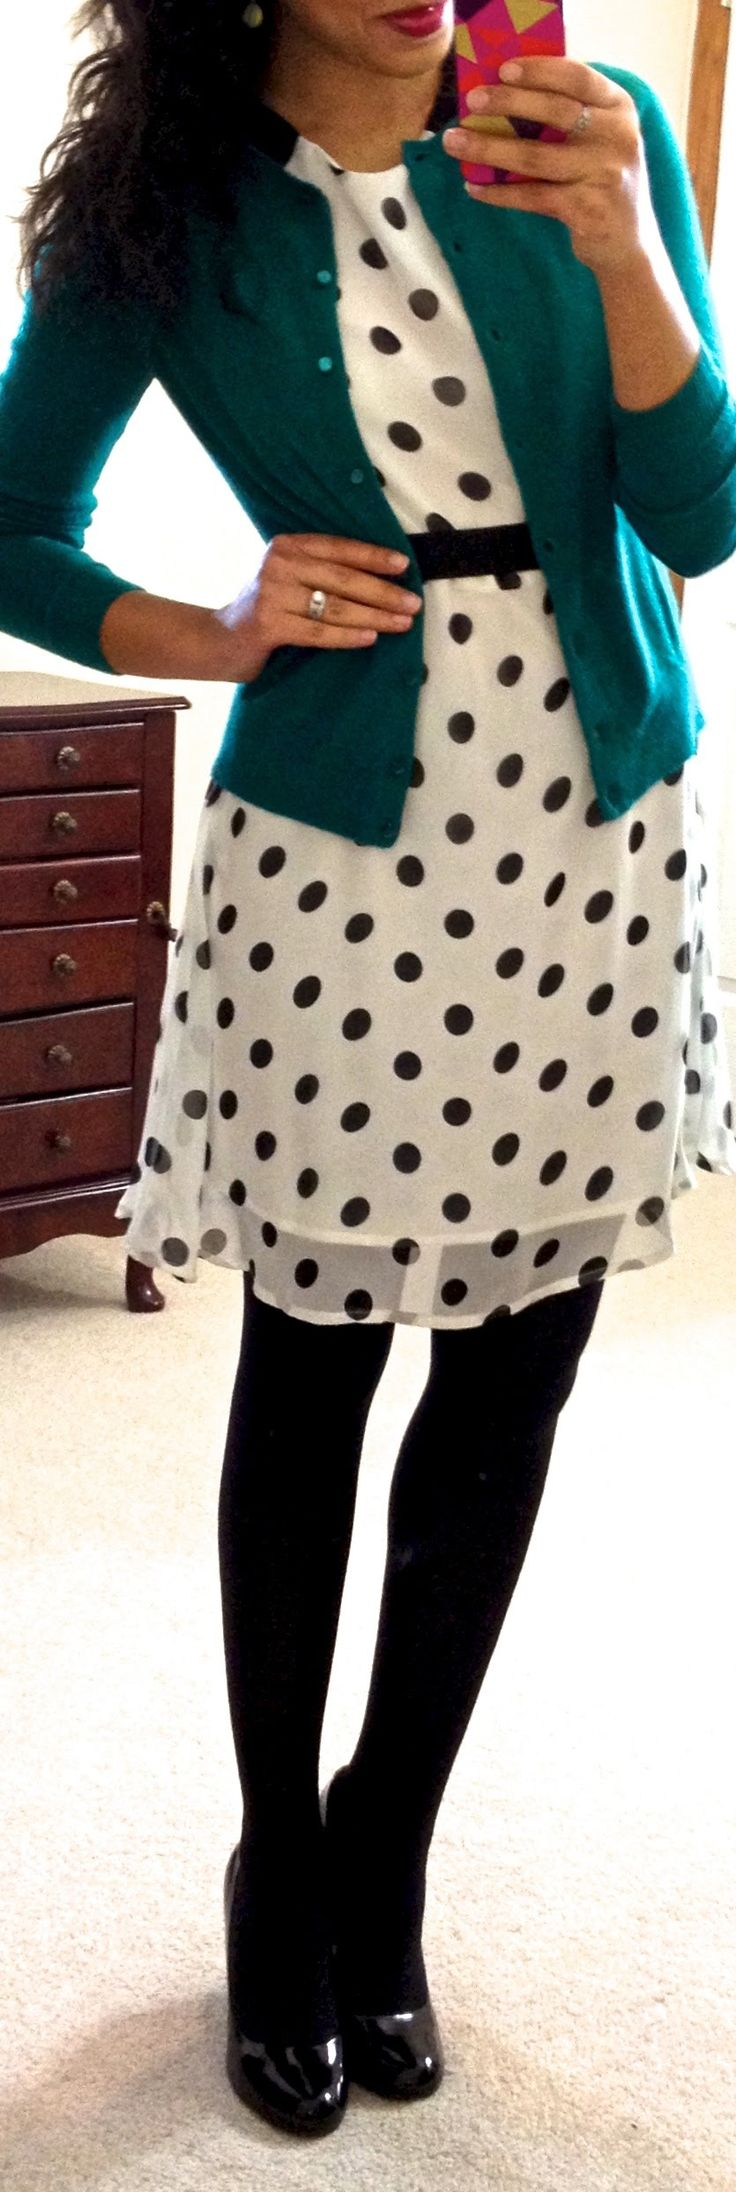 White polka dot dress, solid cardigan and black tights. More on hello gorgeous